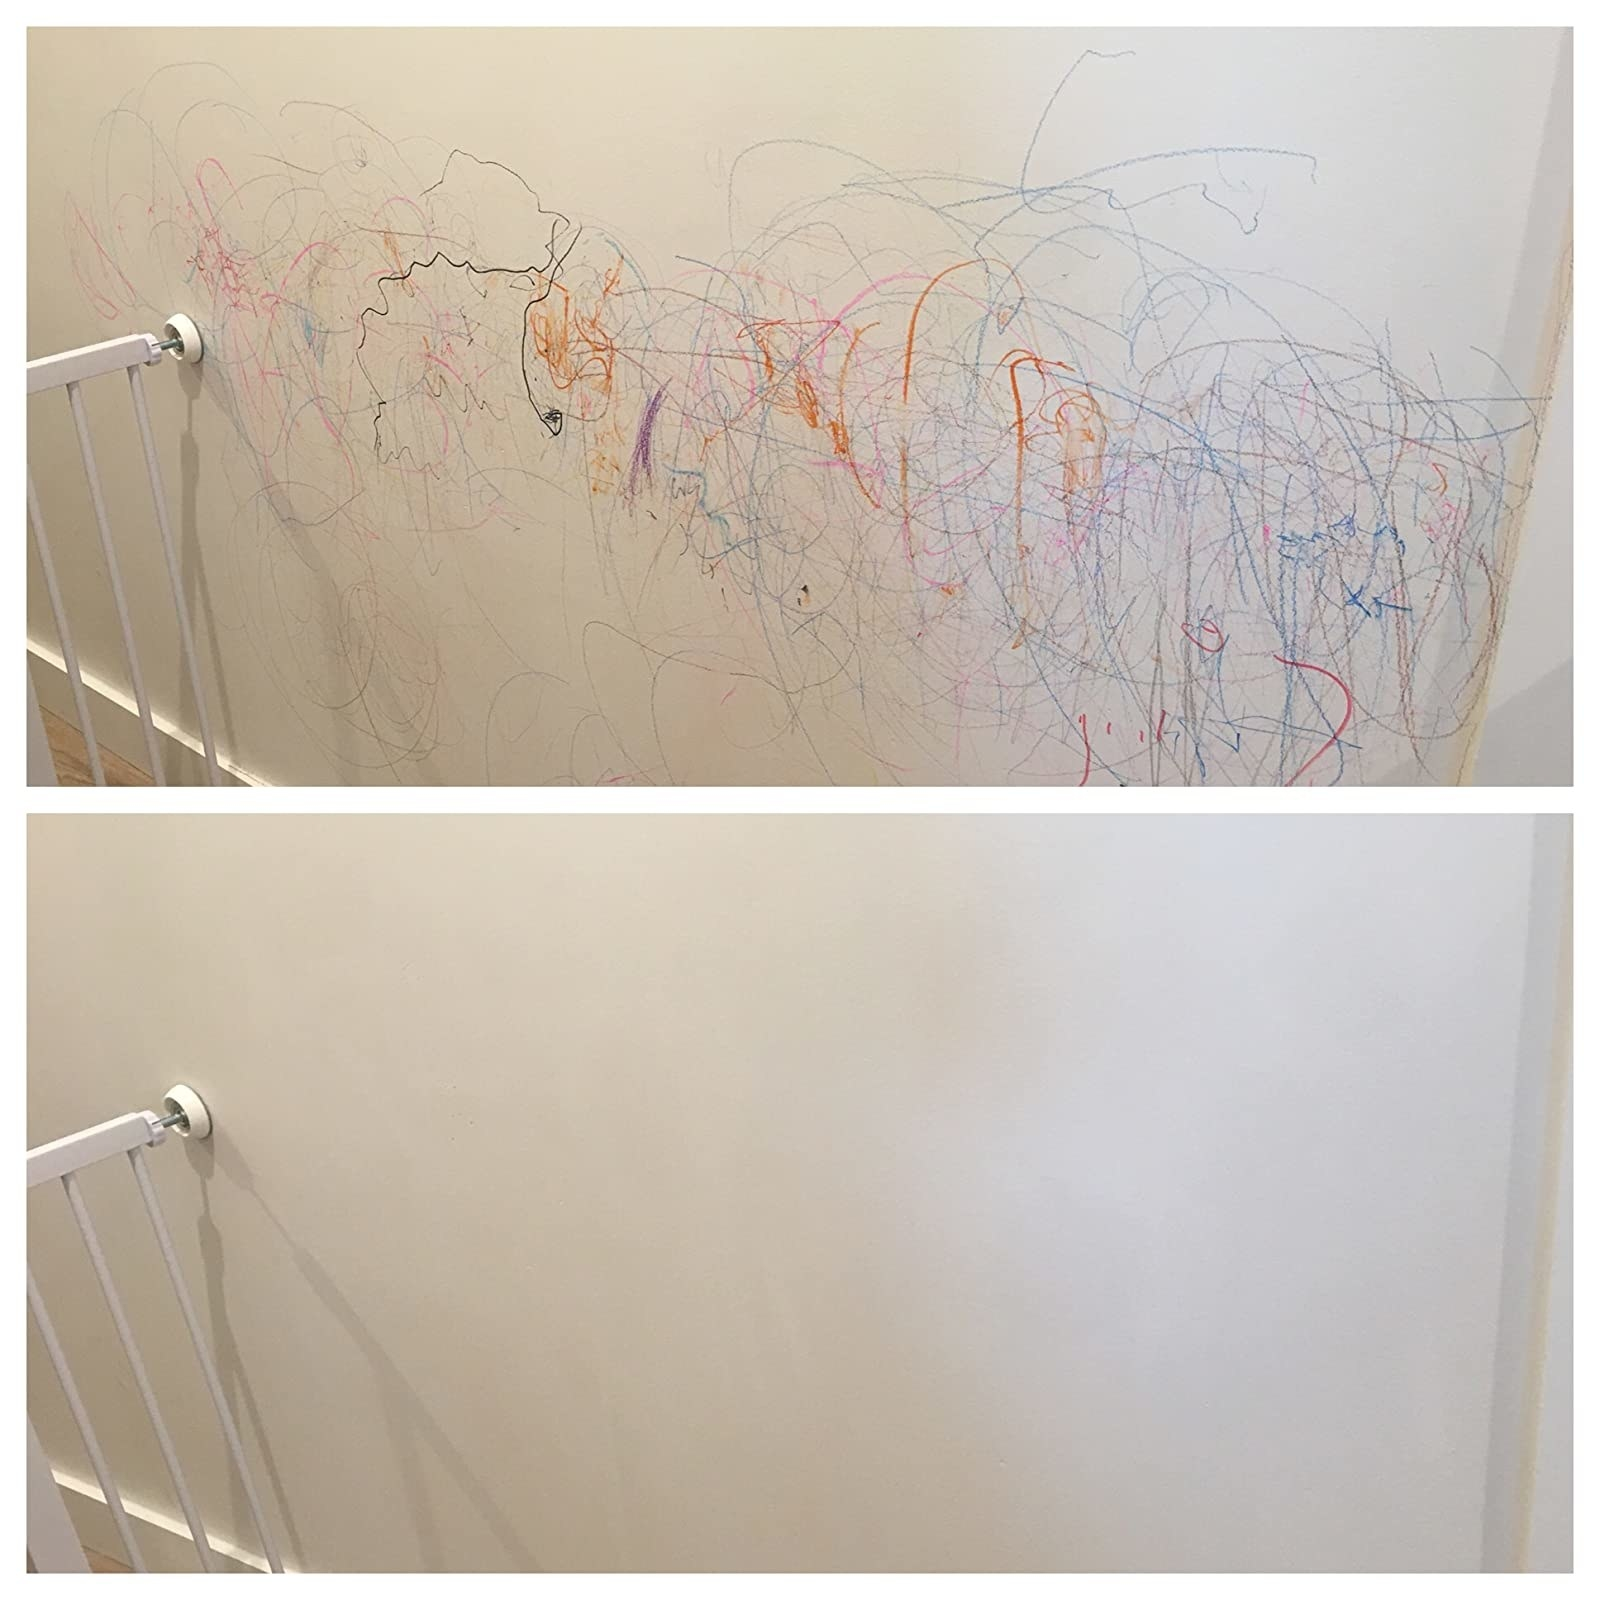 a wall with crayon stains, and after being cleaned